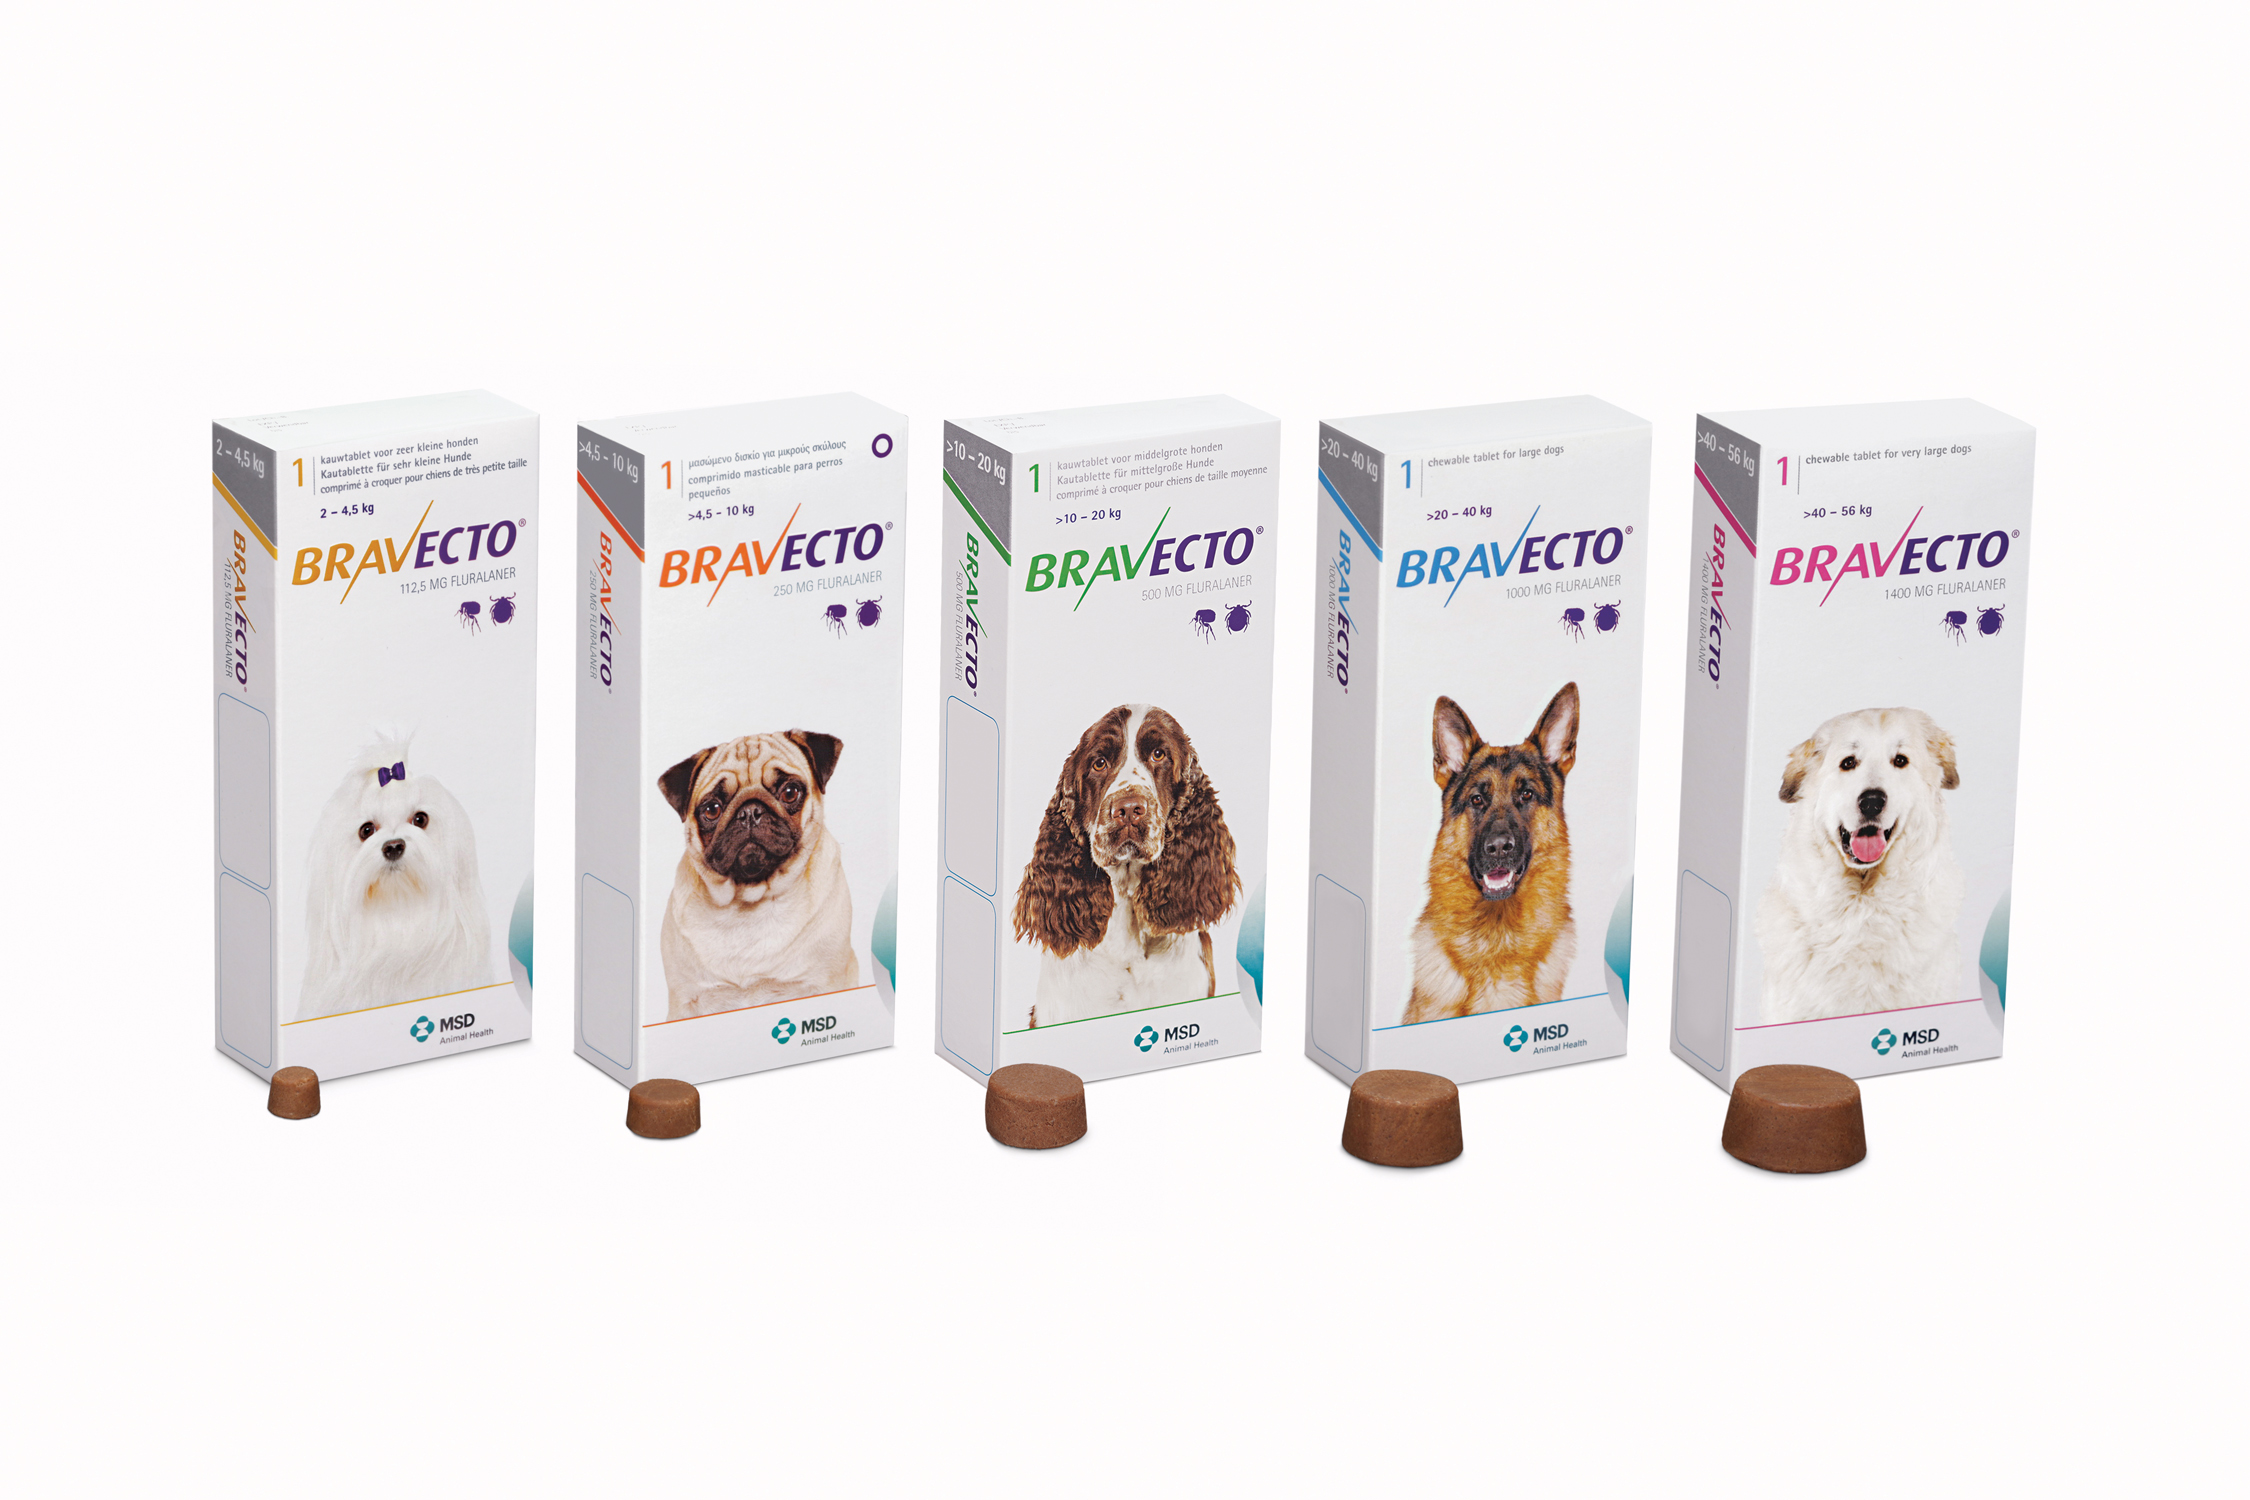 Bravecto Chewable Tablets 112.5mg for Very Small Dogs